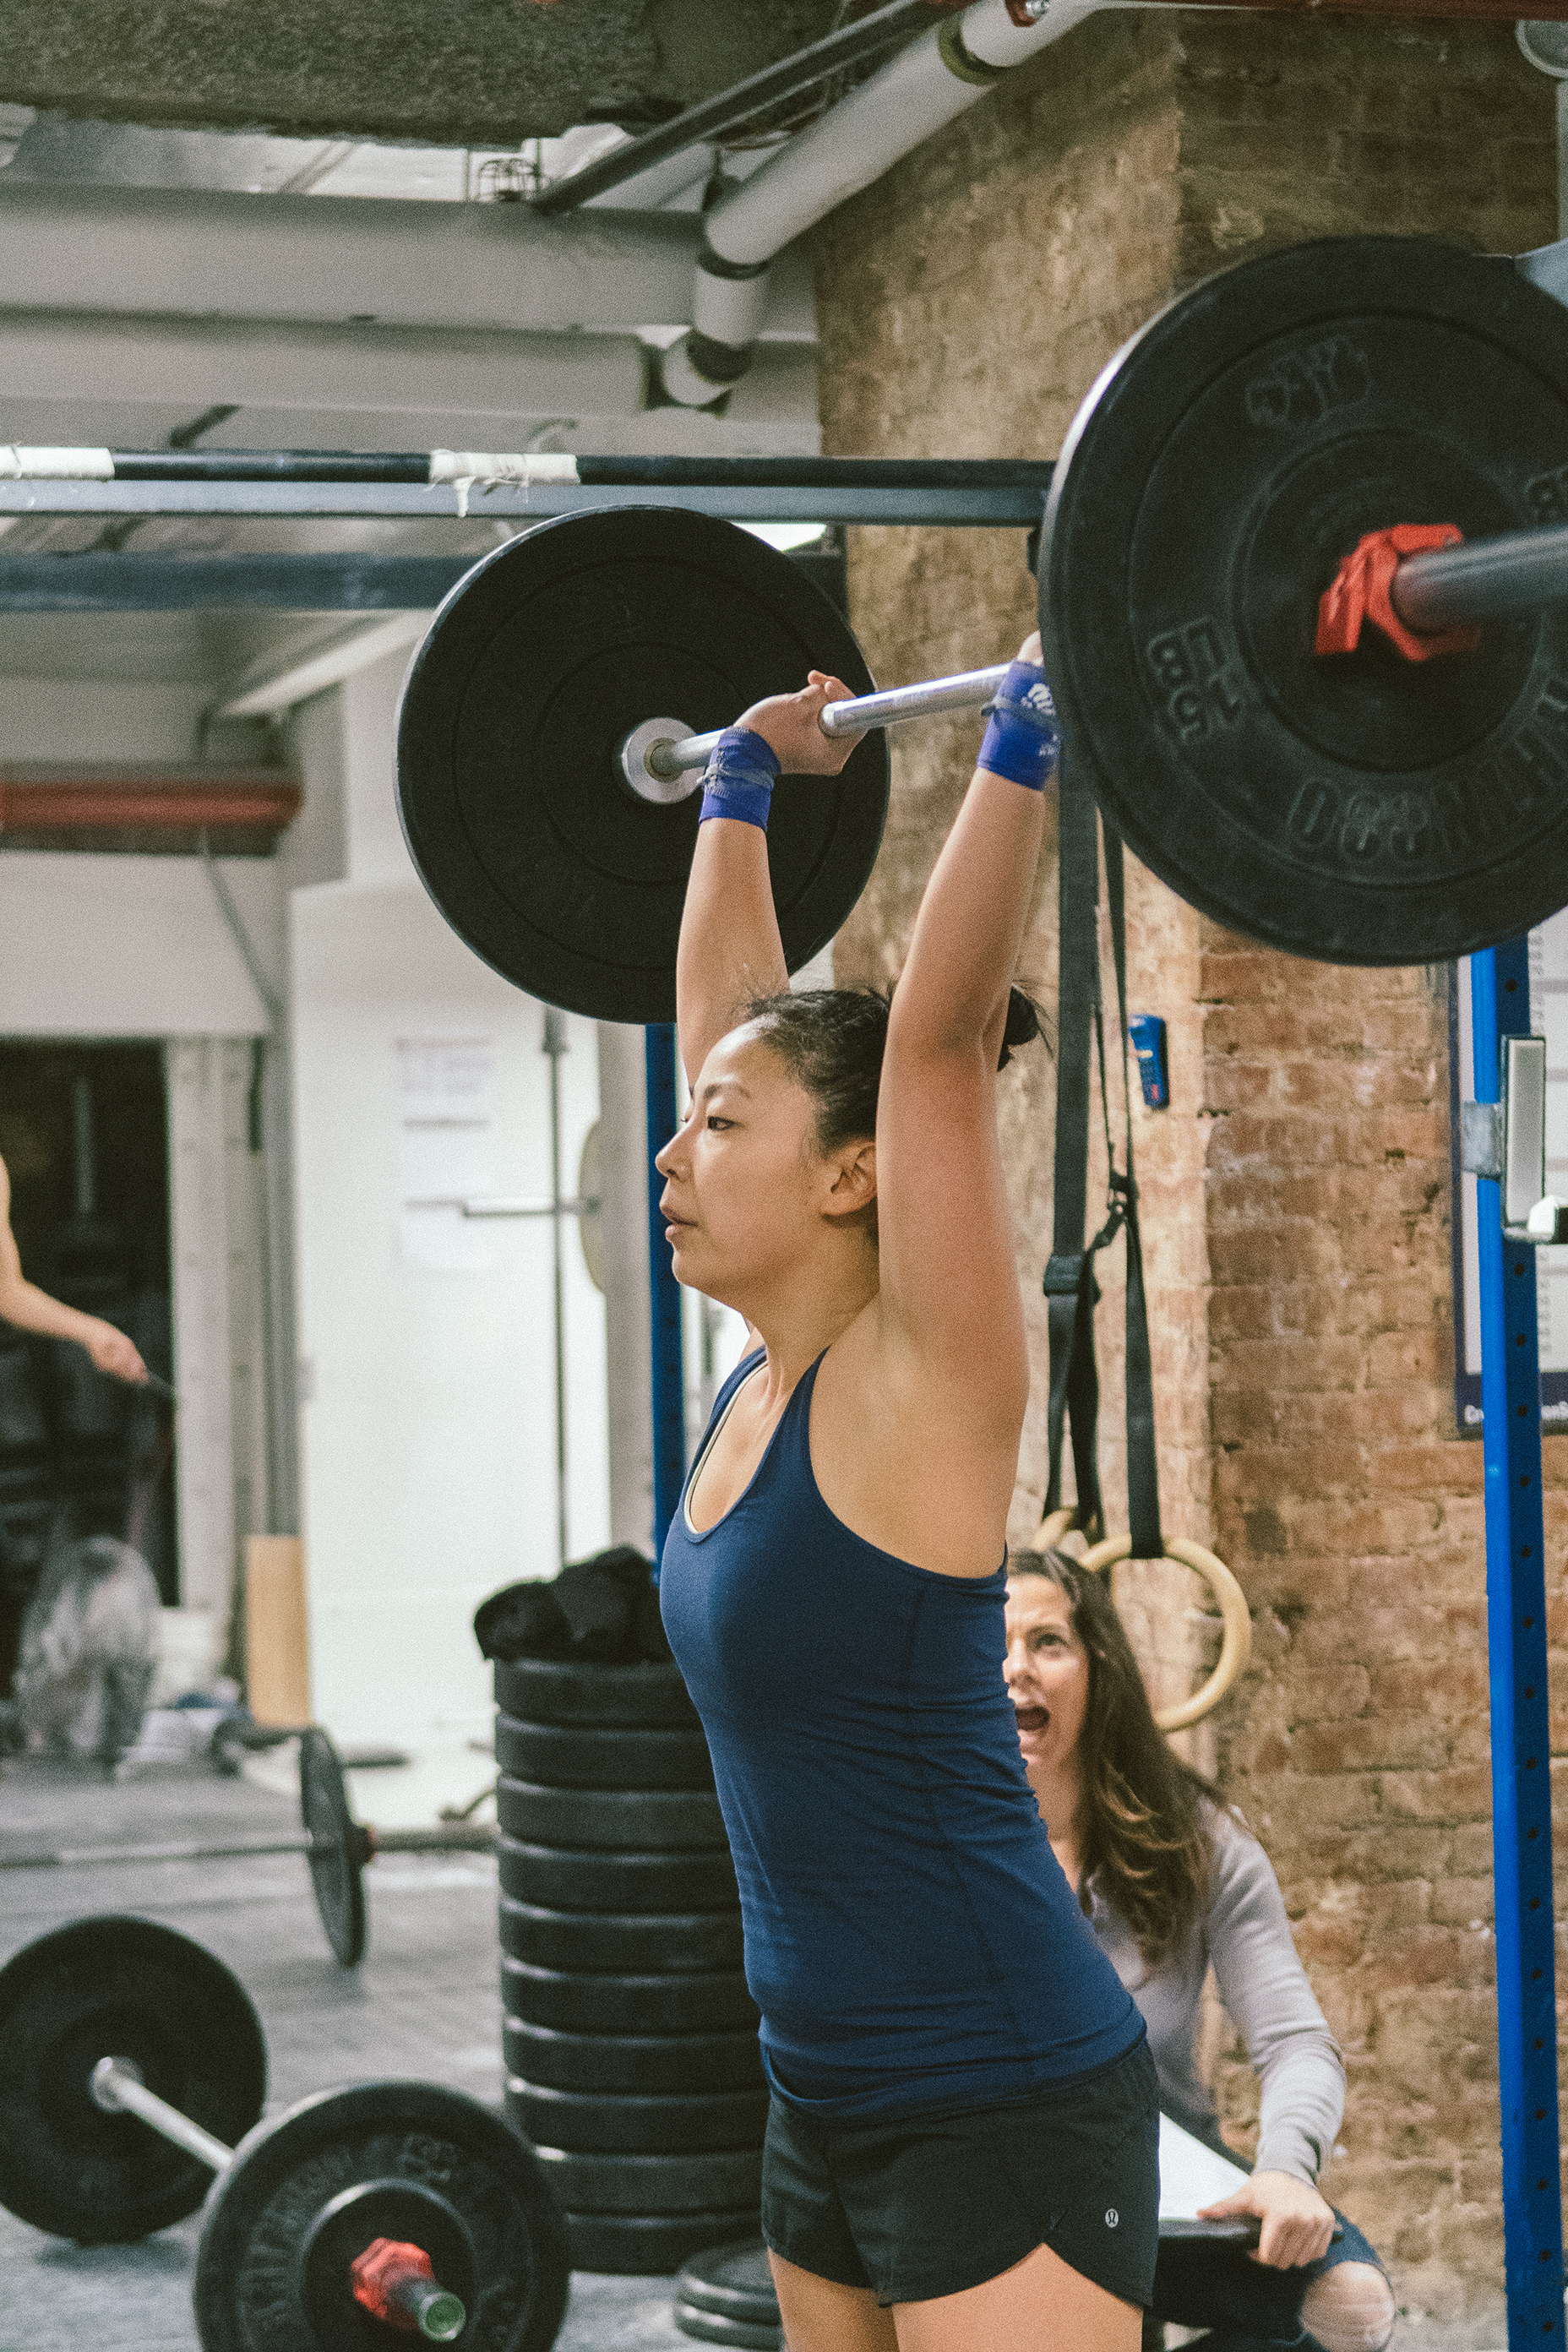 CrossFit Union Strong 17.5 049 20170325.jpg